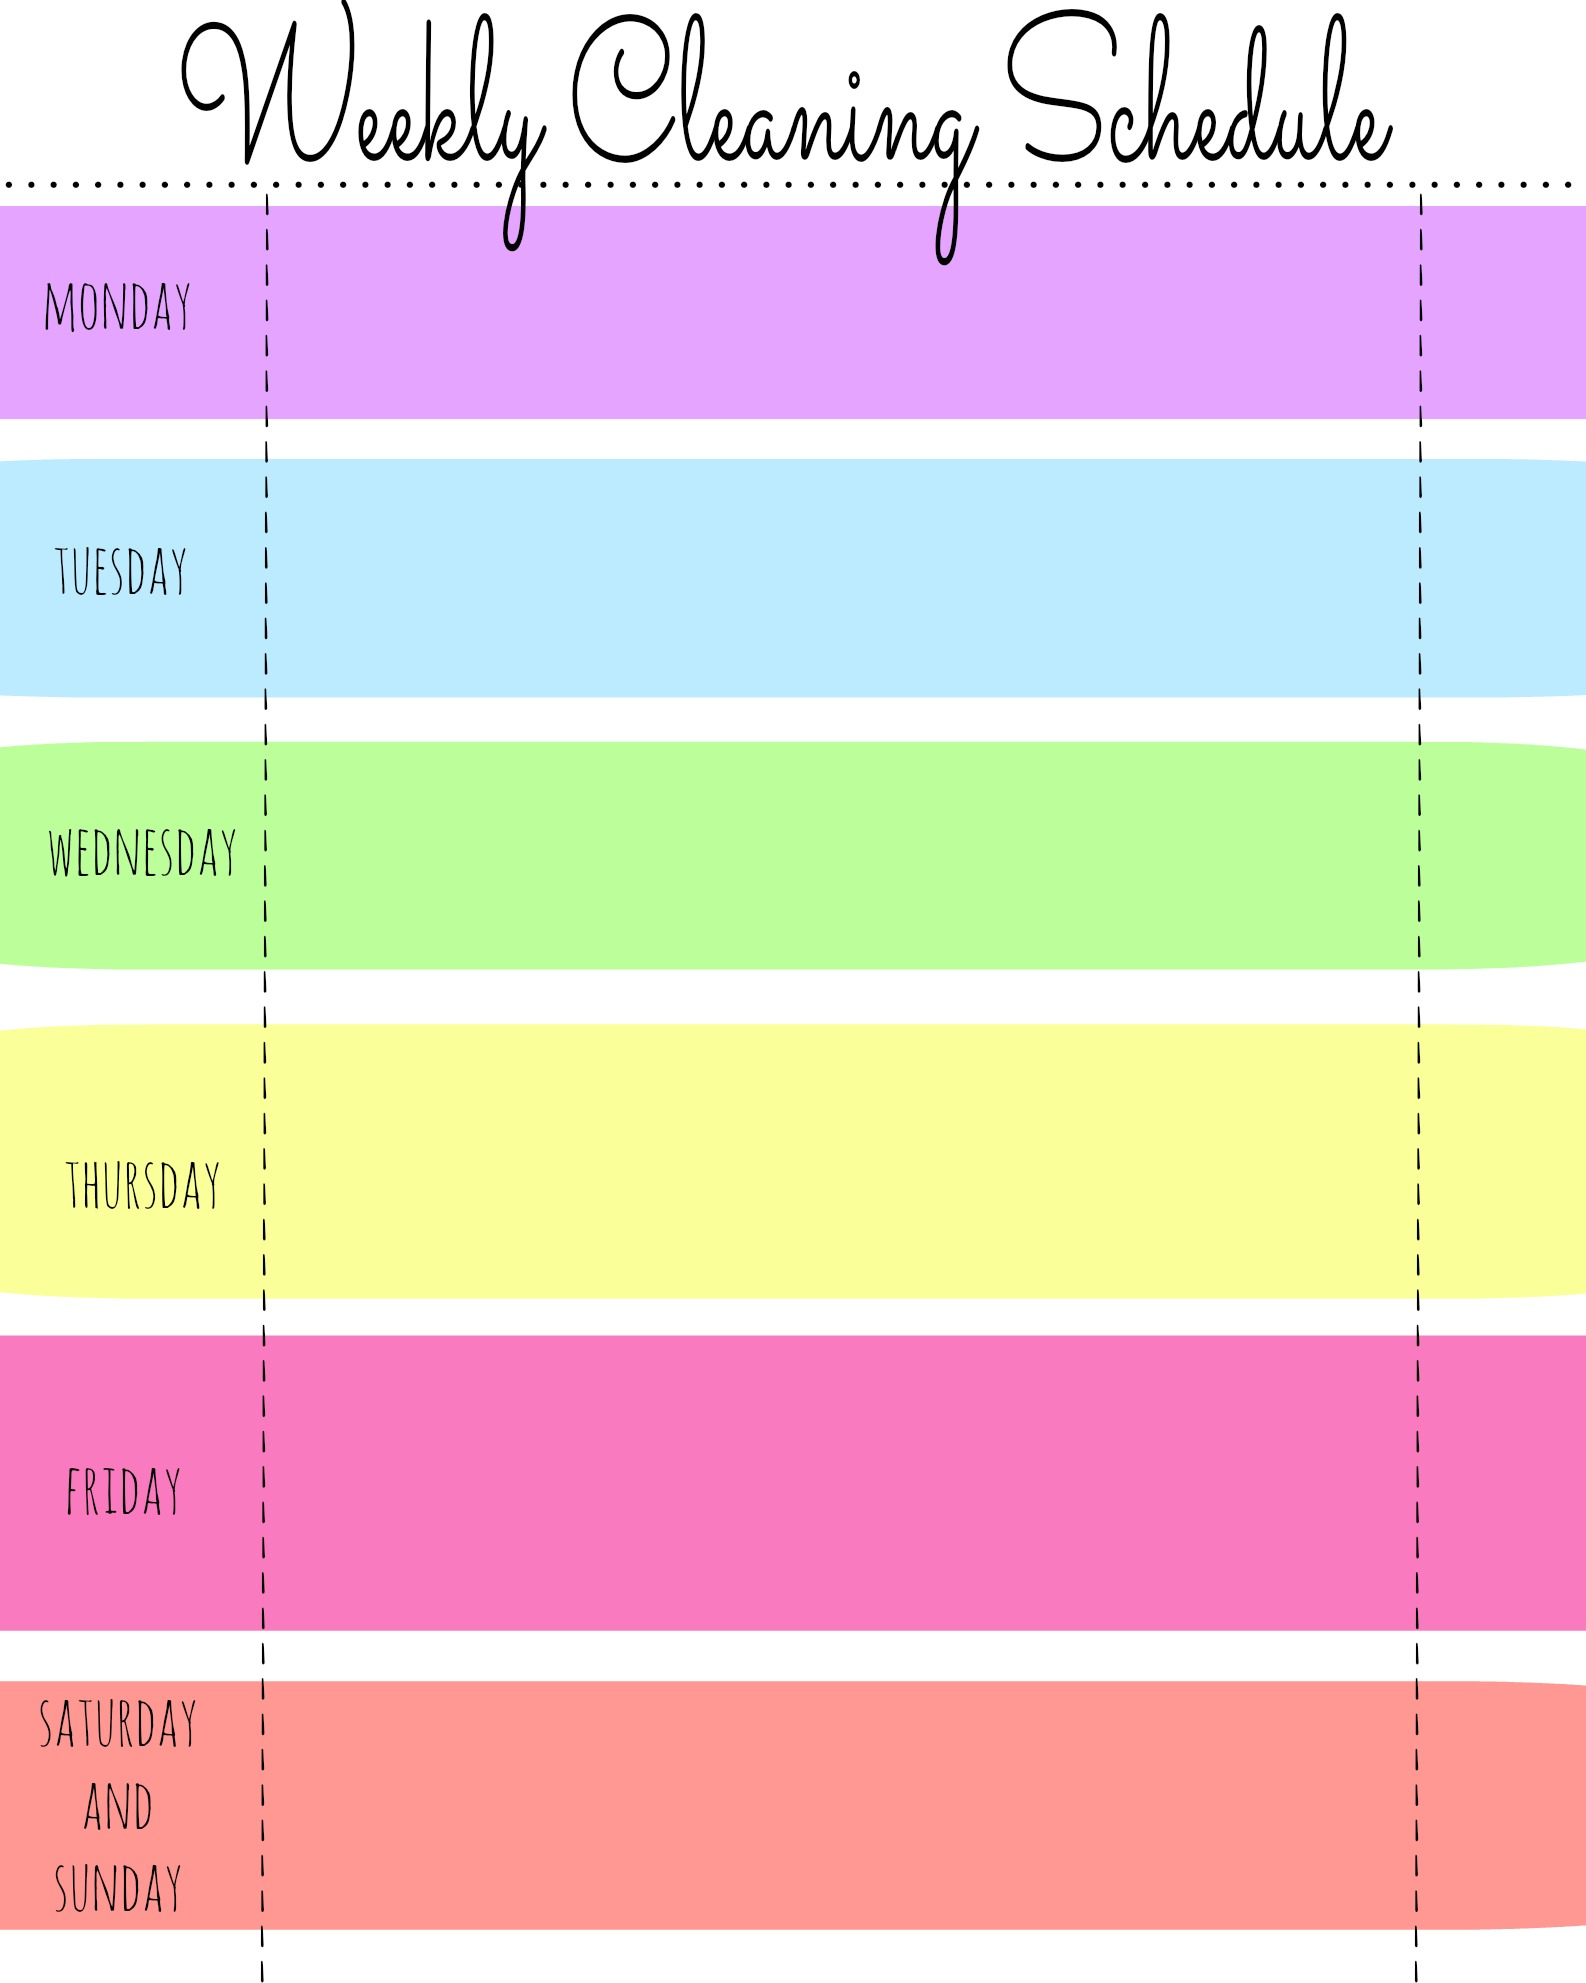 5 Images of Daily Cleaning Schedule Blank Printable